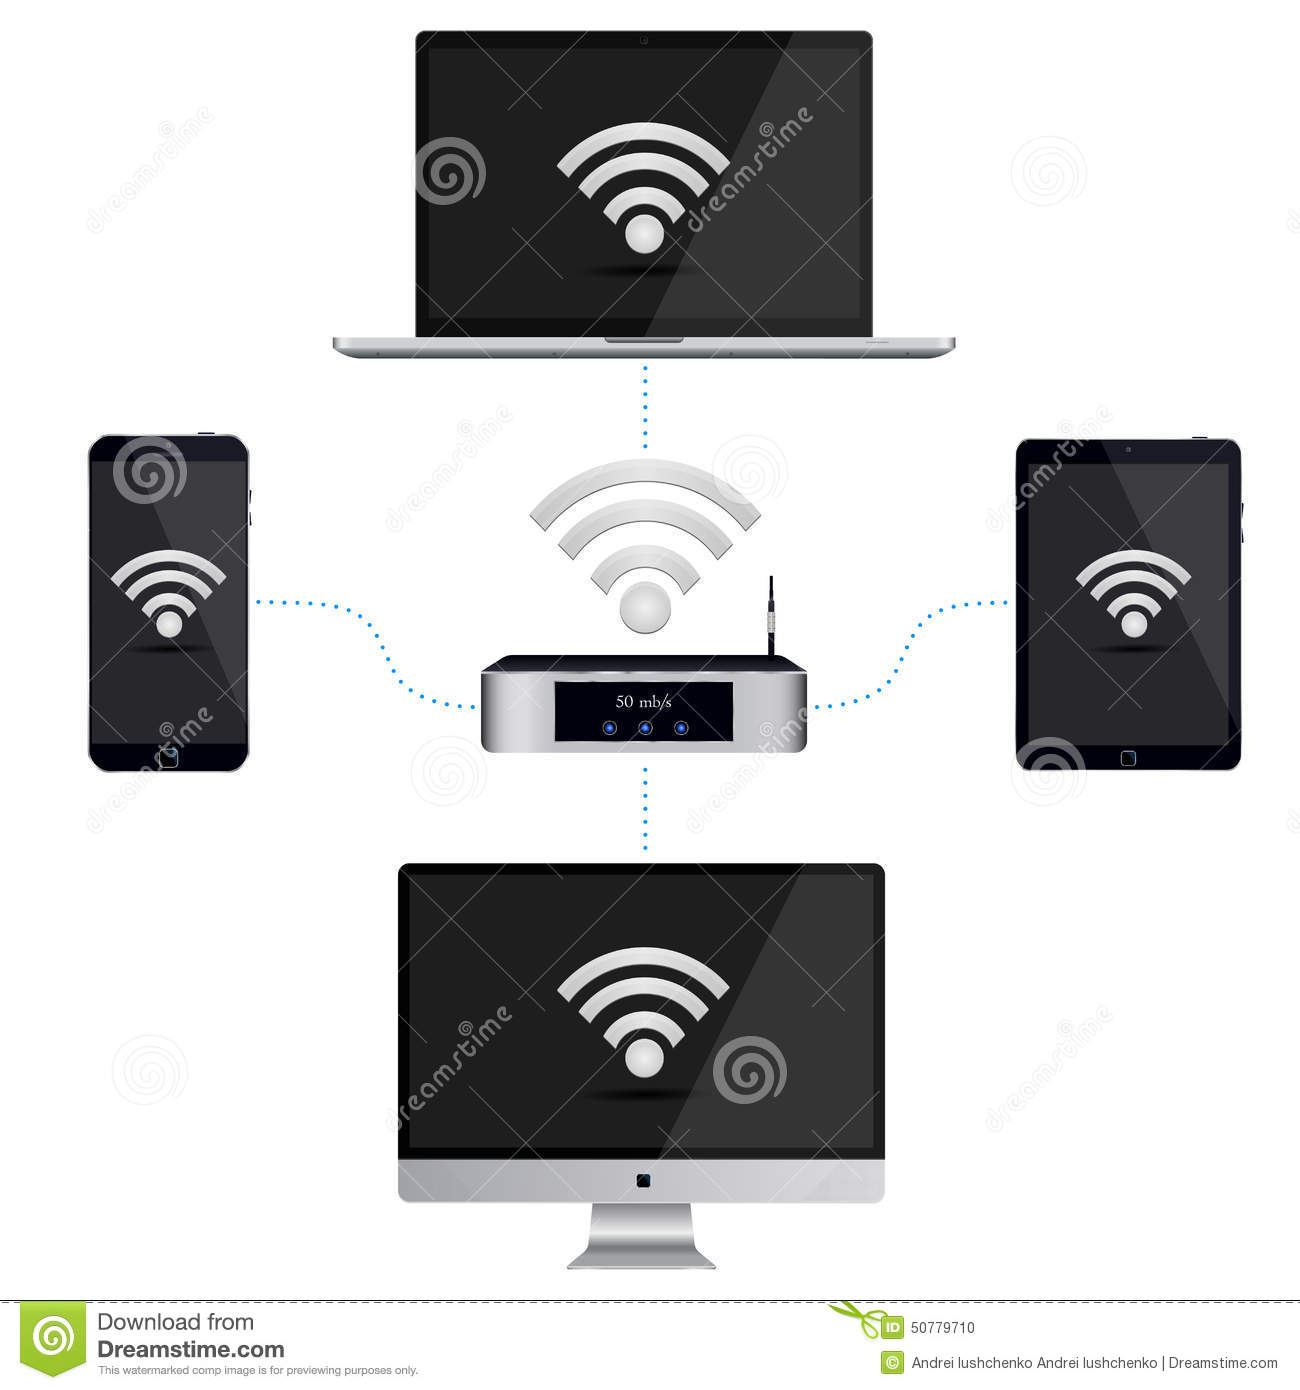 Wiring Diagram Gadgets To The Wi Fi Stock Illustration Vector Of Smartphone Pc And Tablet Router With A Signal On Isolated White Background